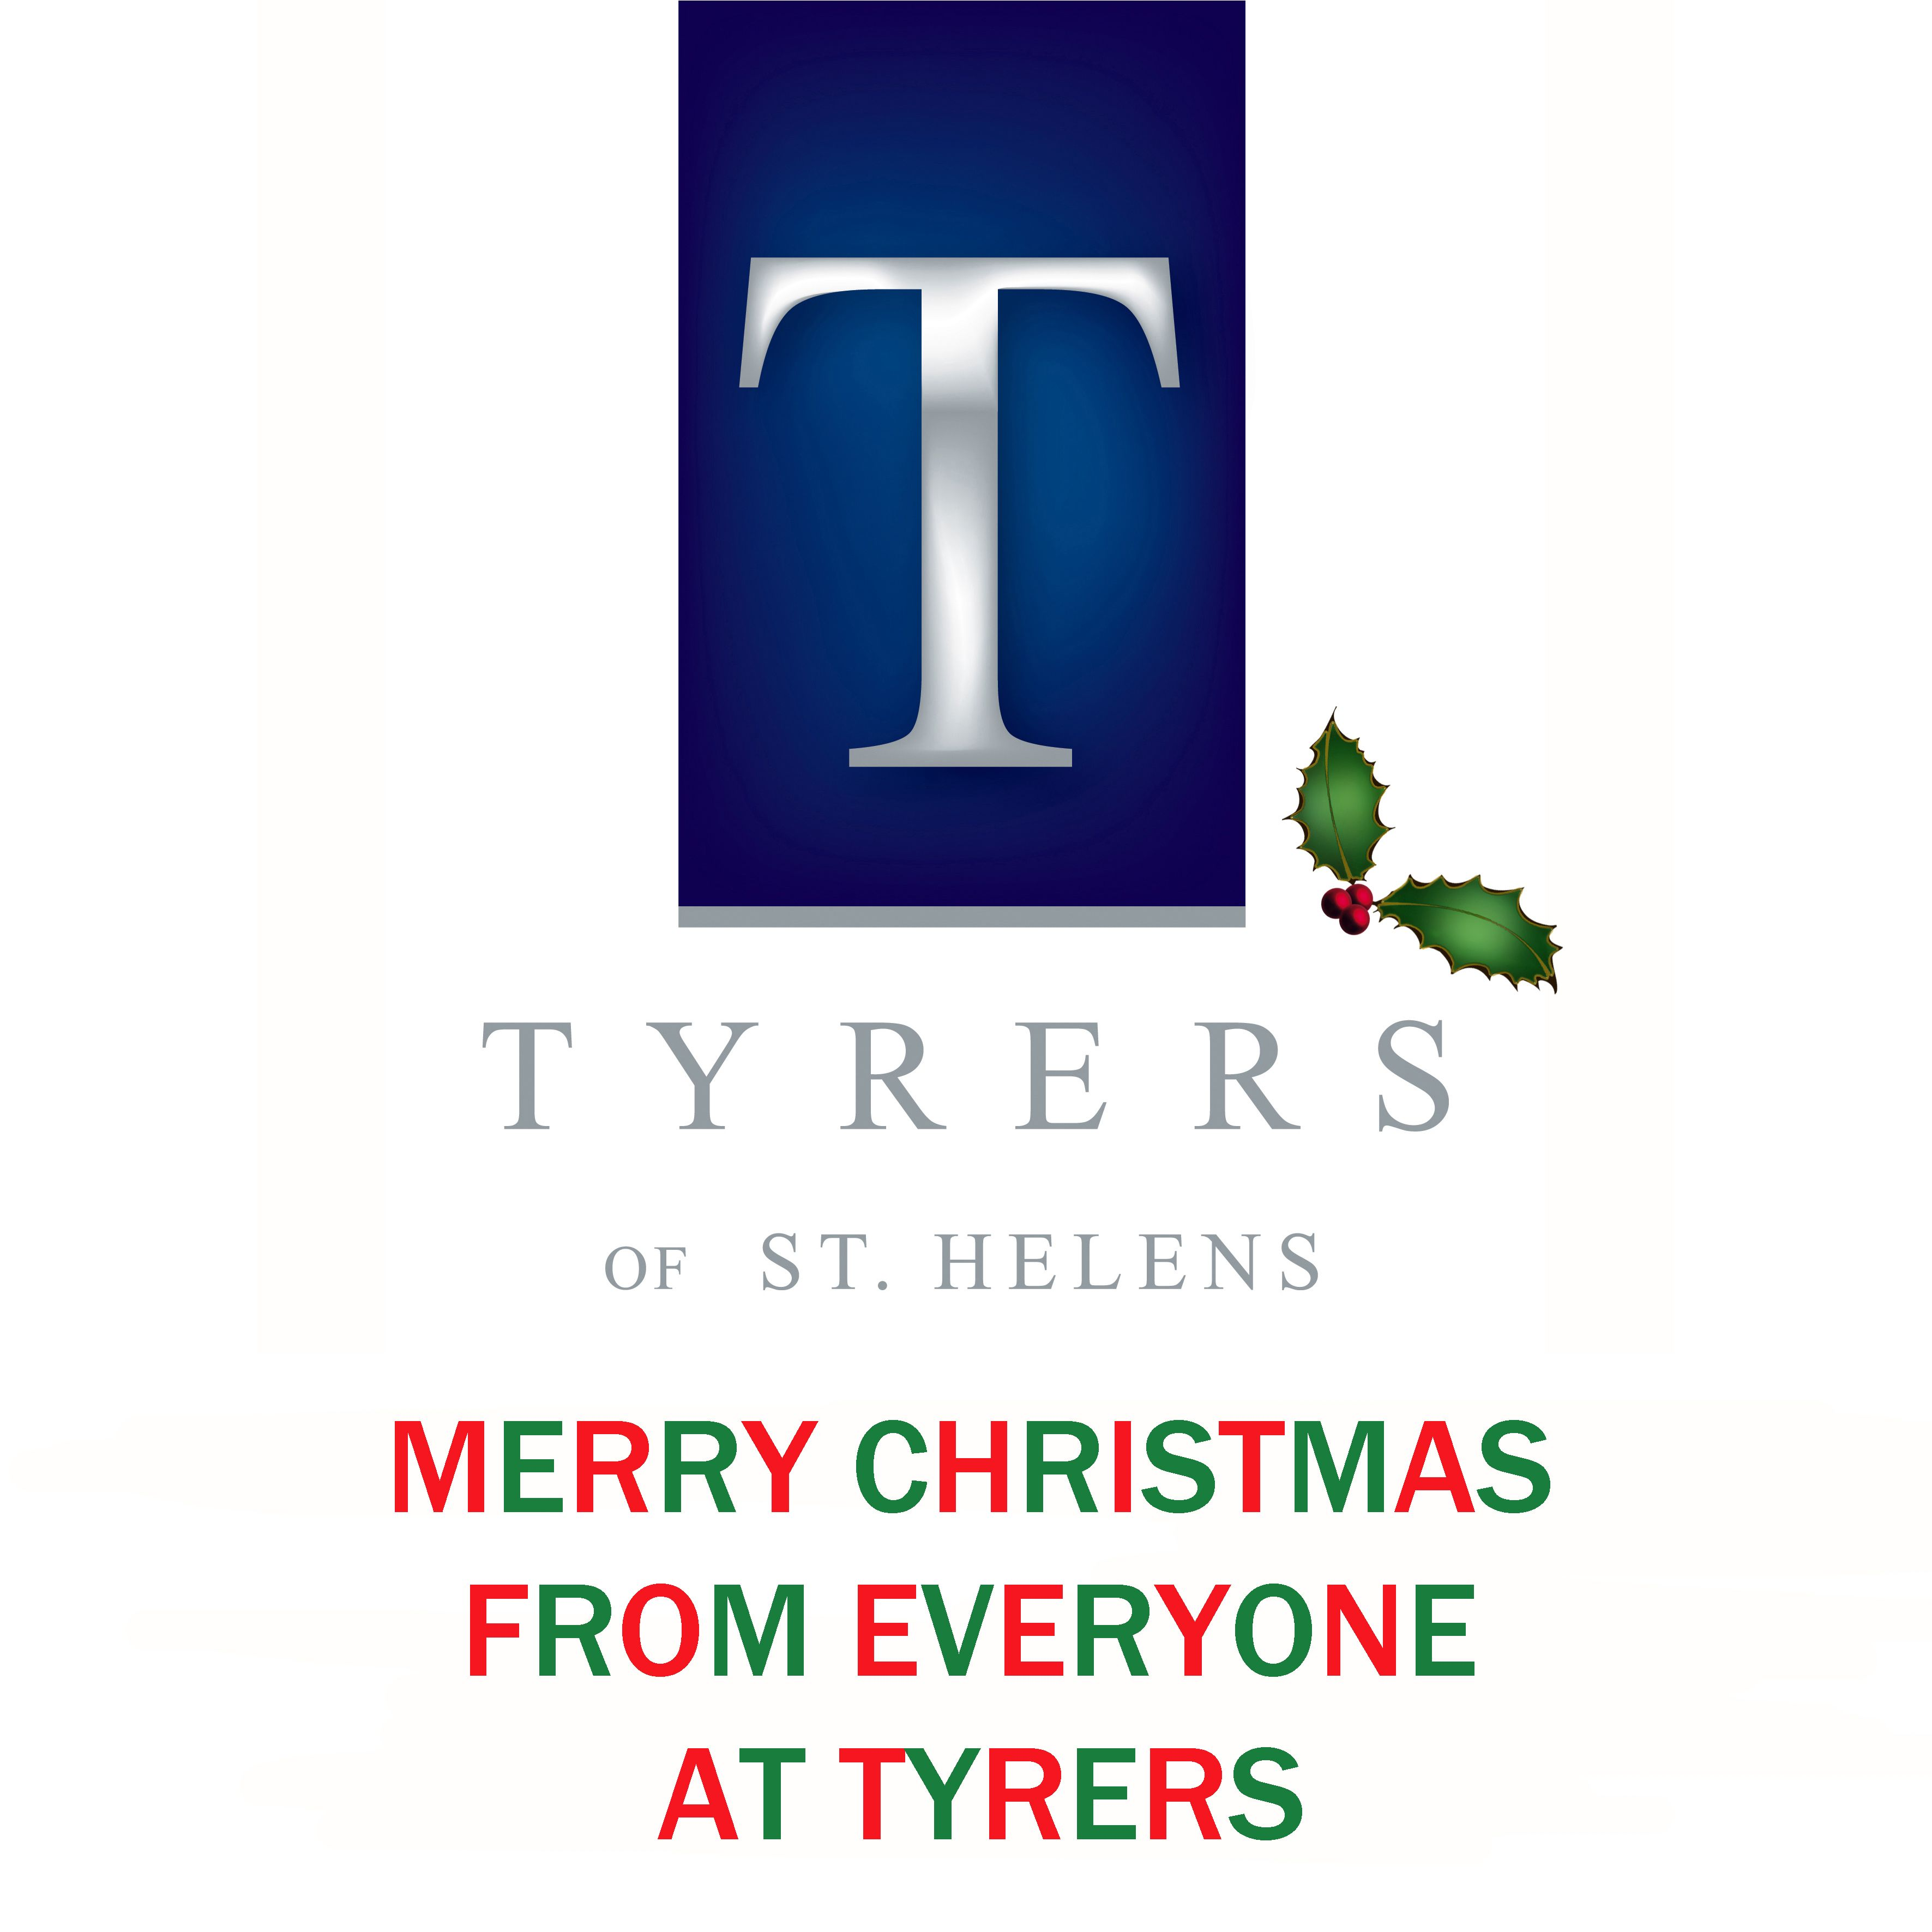 Pin by Tyrers StHelens on CHRISTMAS 2015 Christmas 2015